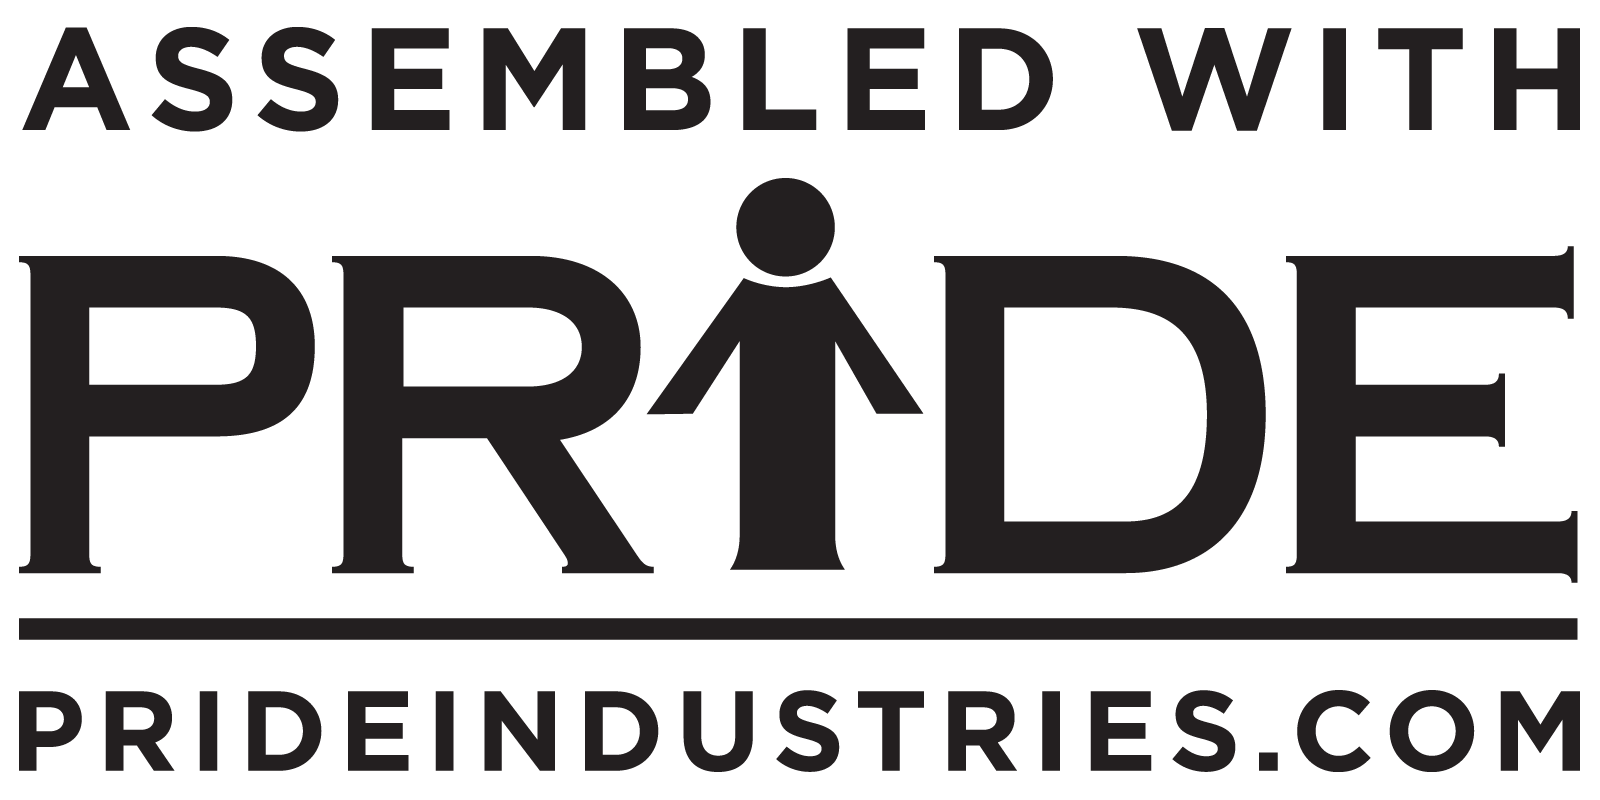 assembled with pride logo